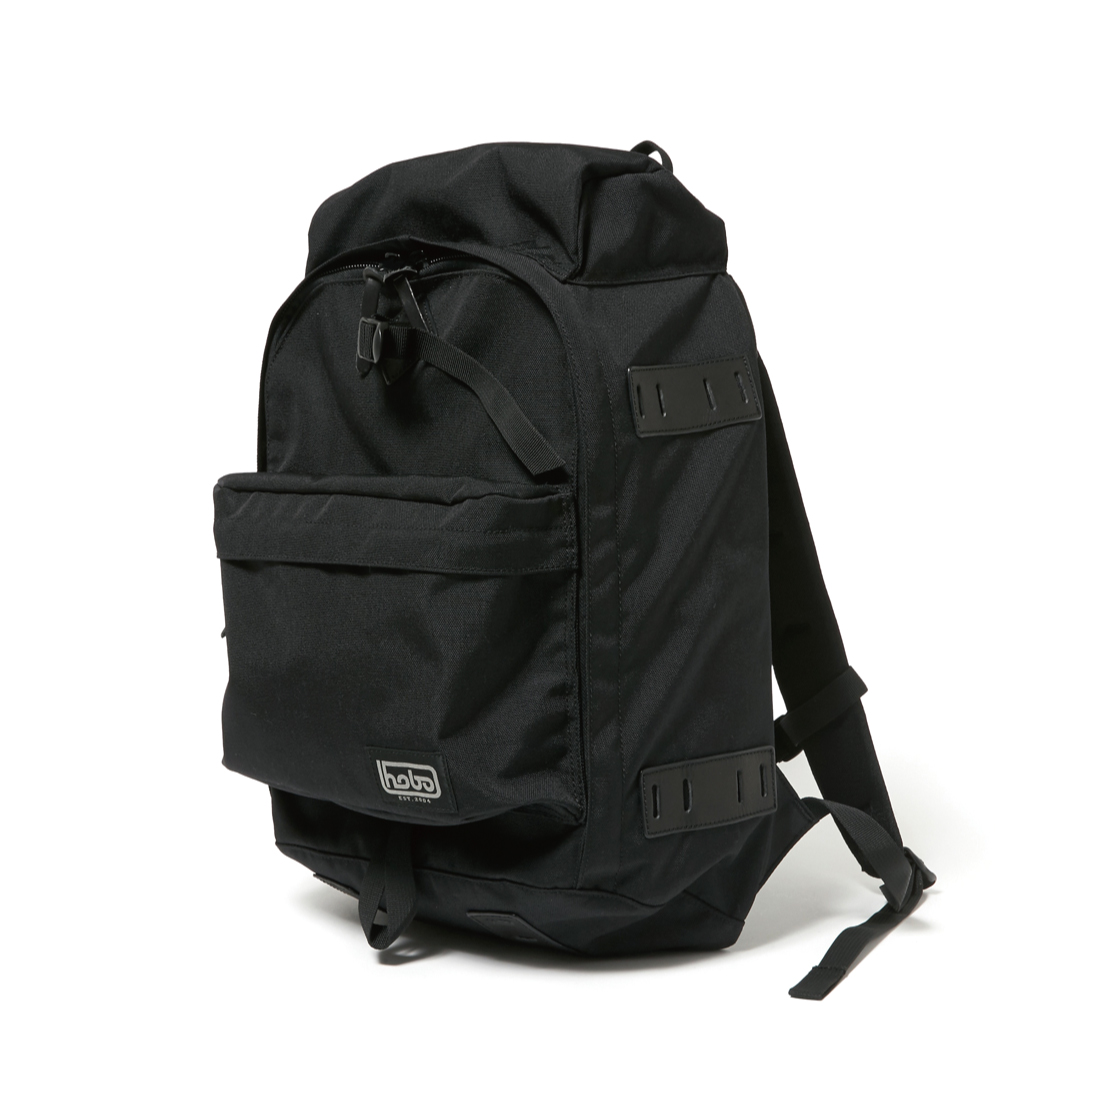 "HOBO / CELSPUN NYLON BACKPACK 31L ""SIRDAR"" -BLACK"